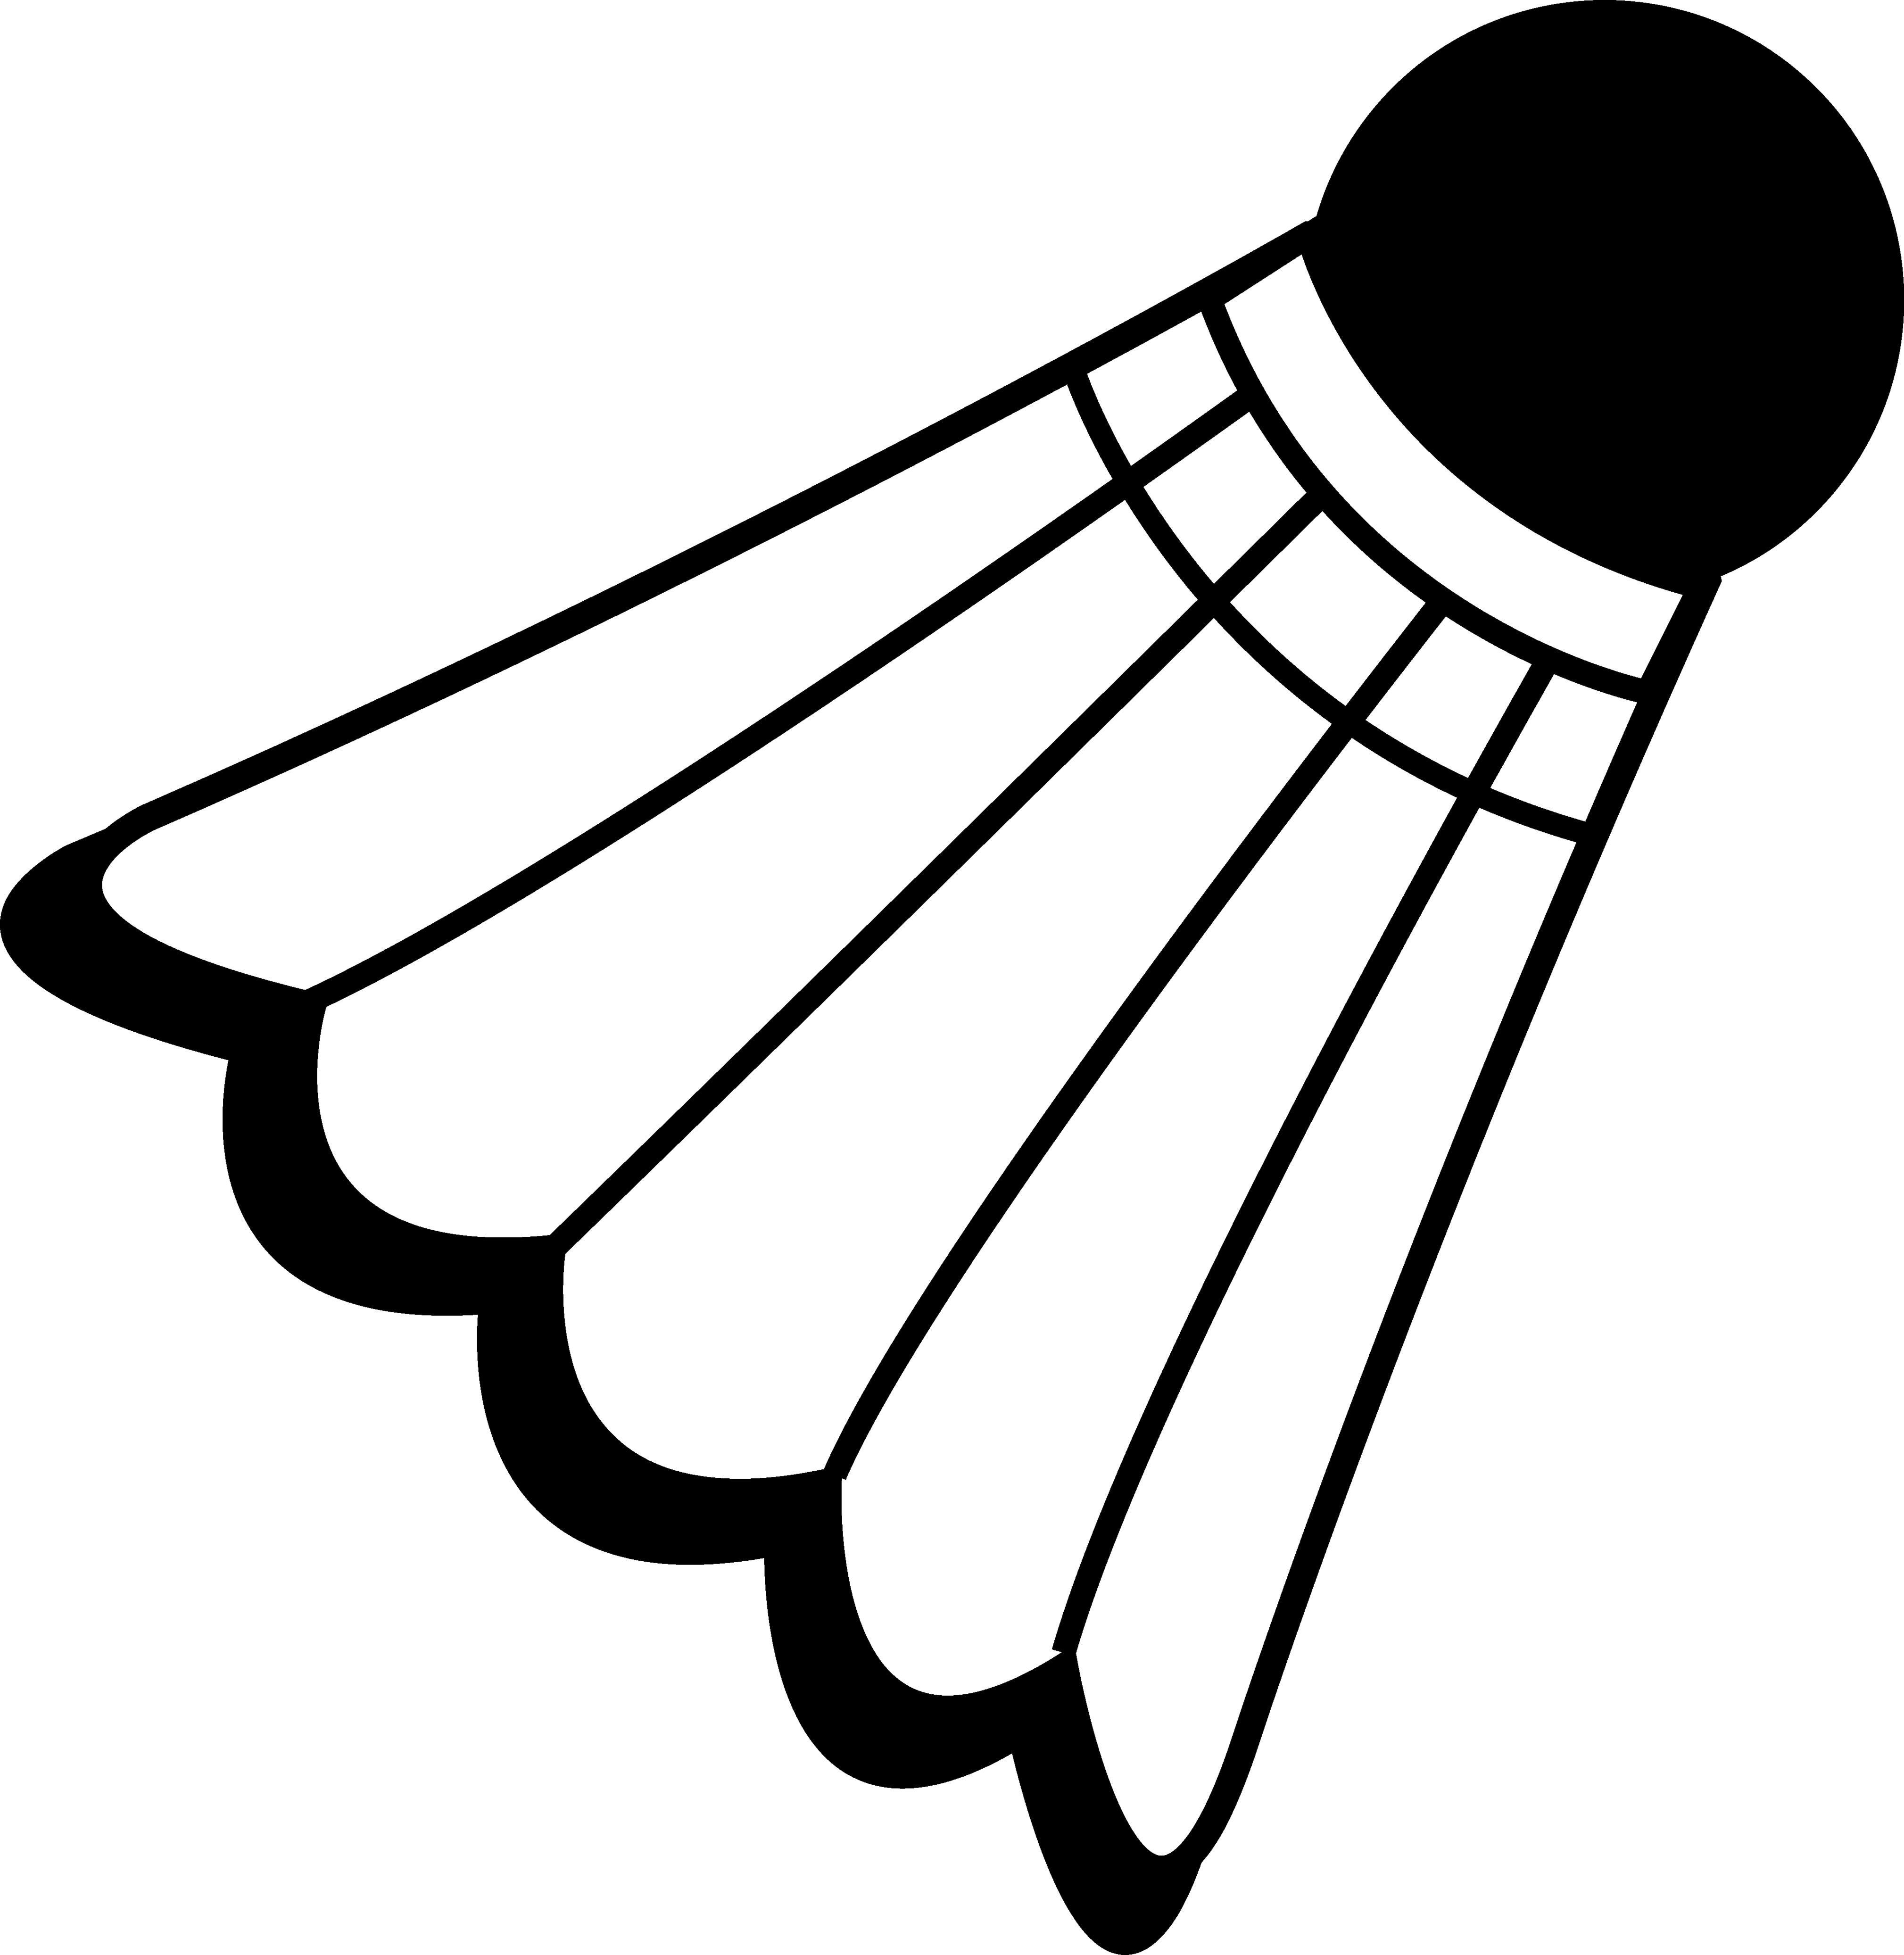 Free Badminton Silhouette Cliparts Download Free Clip Art